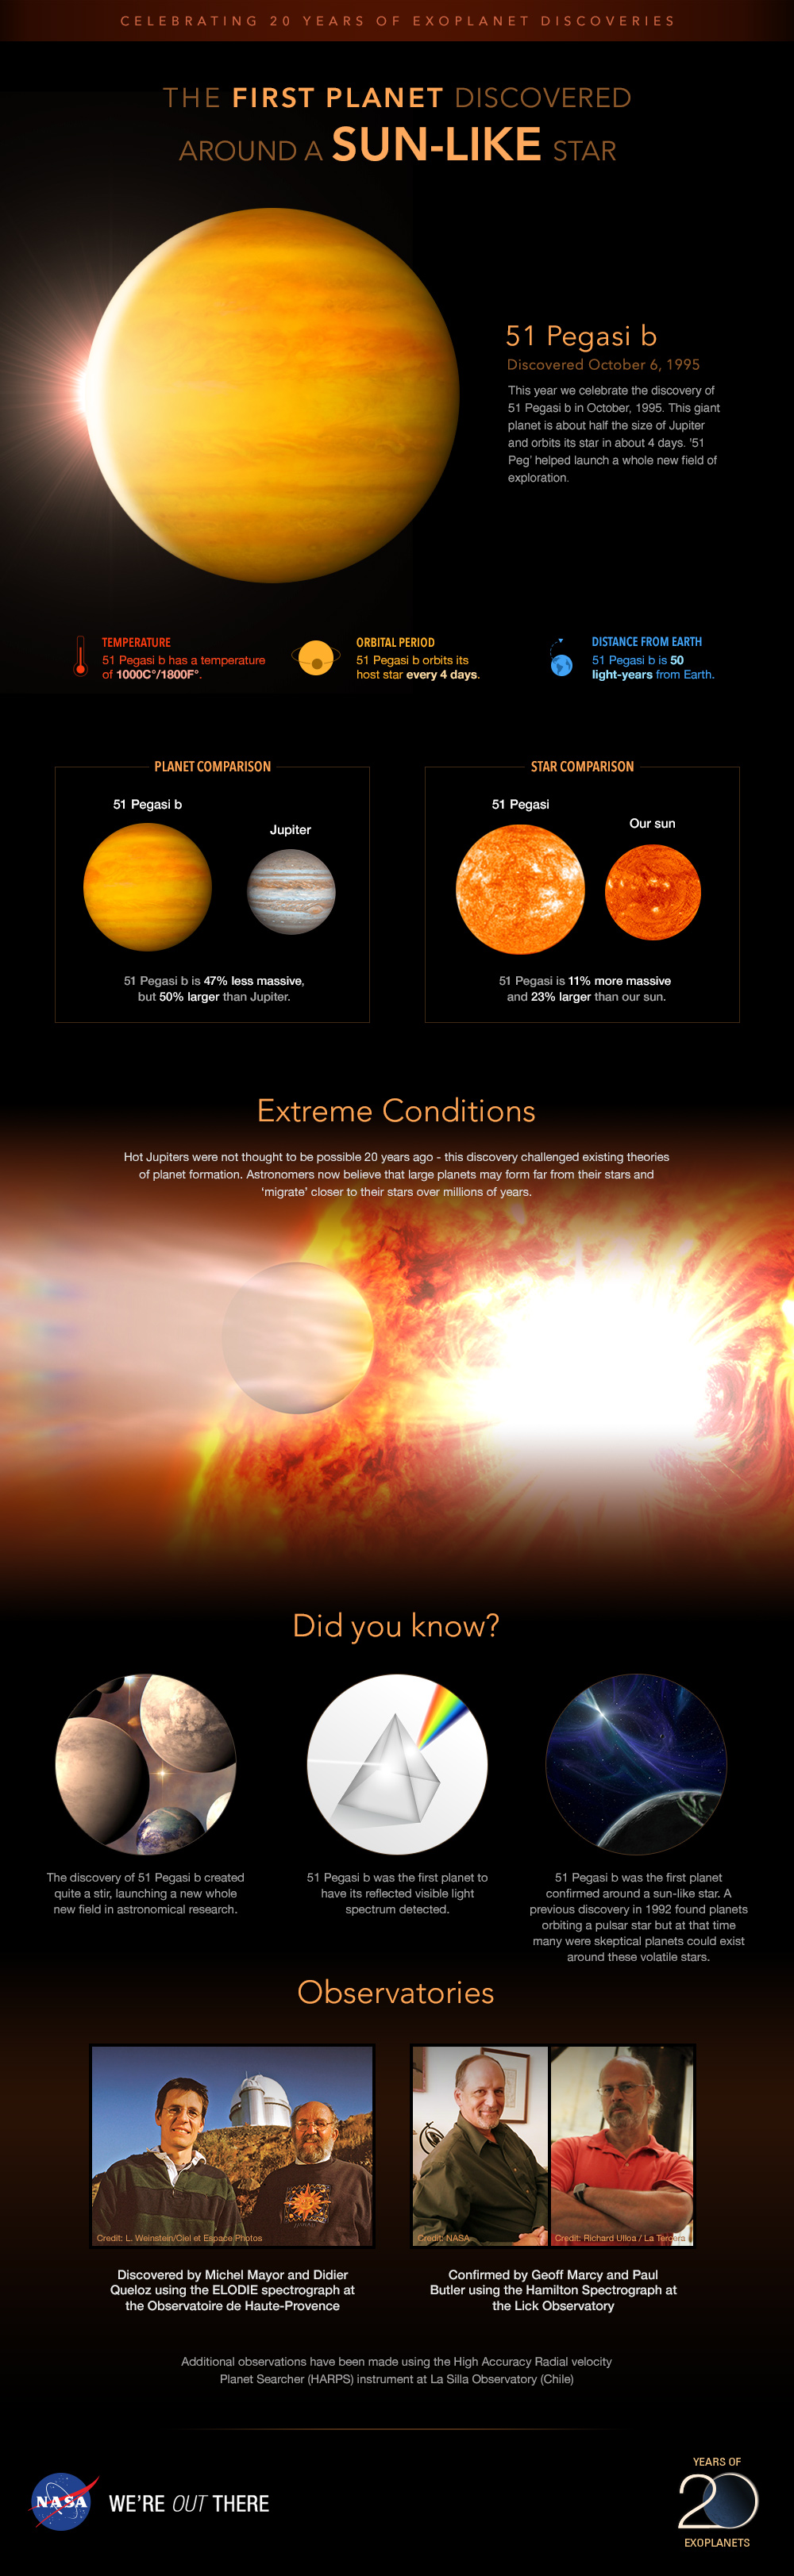 Infographic: Profile of planet 51 Pegasi b